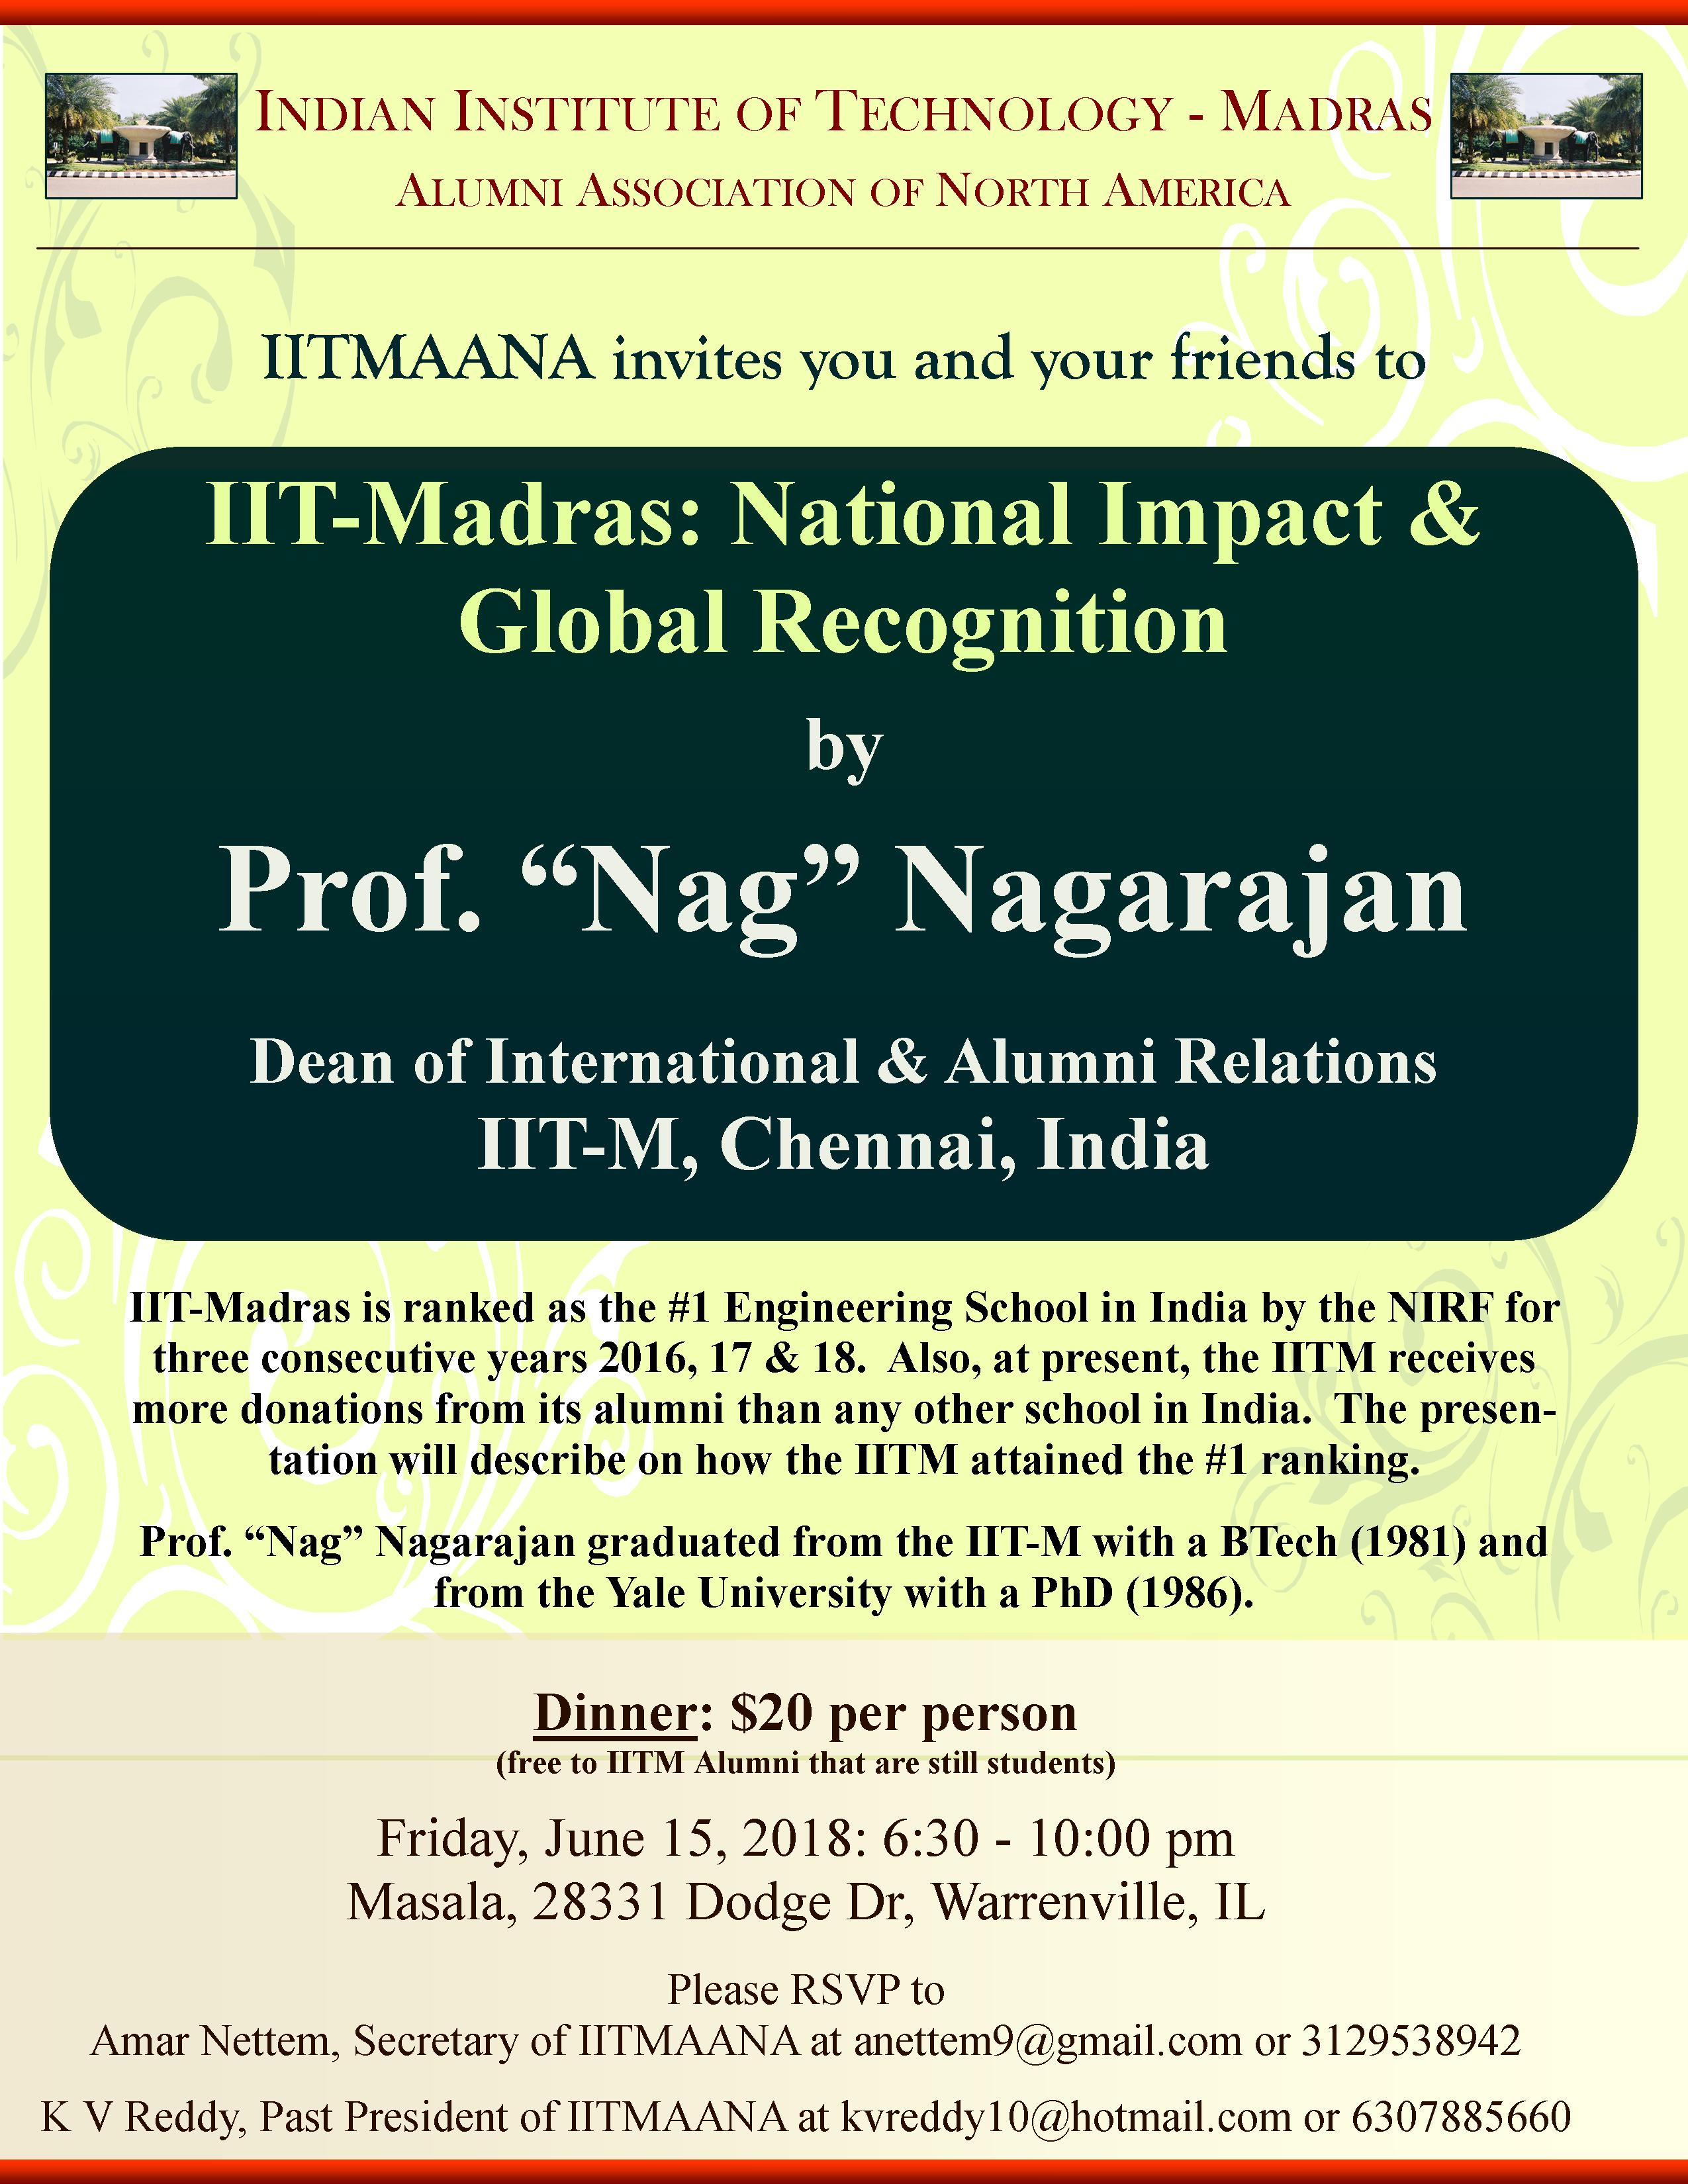 IITM_Alumni_2018_Dinner_Flyer.jpg